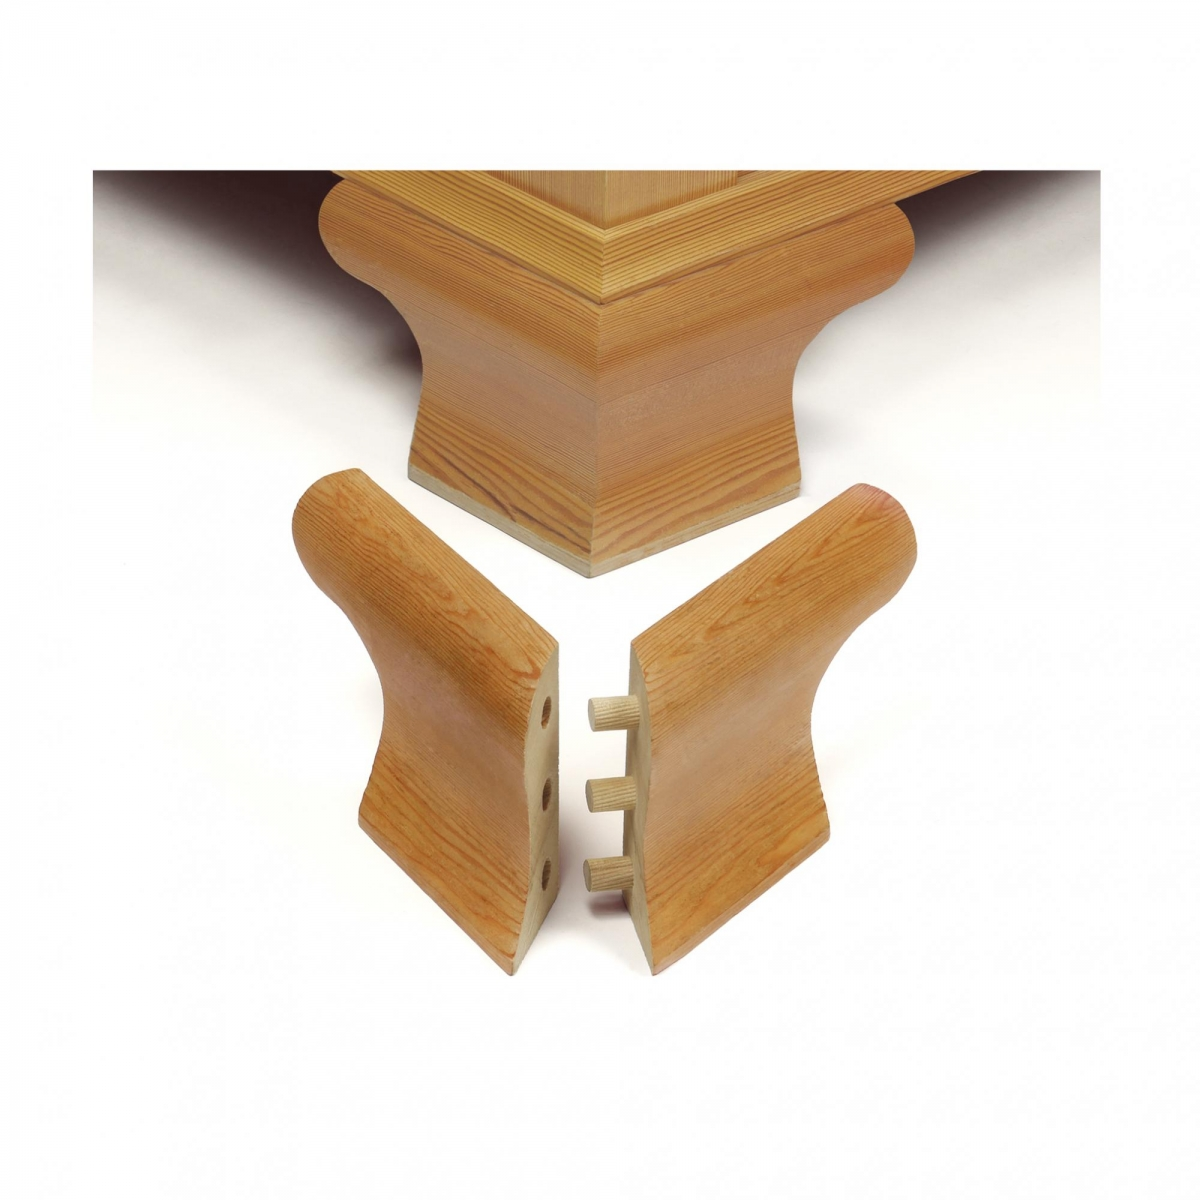 Frame Mortise Amp Tenon Joints Leigh Dovetail Jigs And